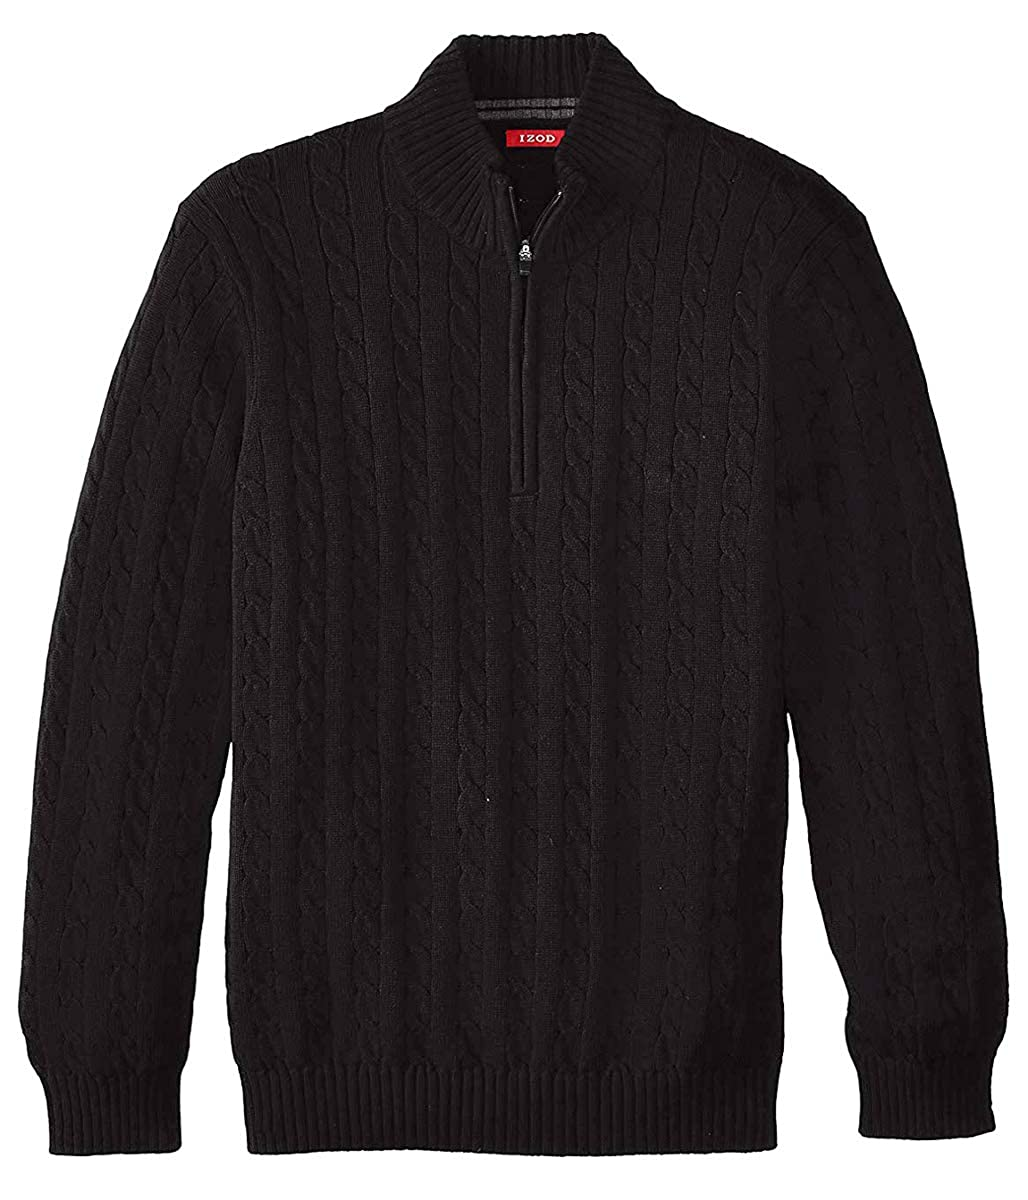 IZOD Men's Big and Tall Solid Color 1/4 Zip Cable Knit Sweater